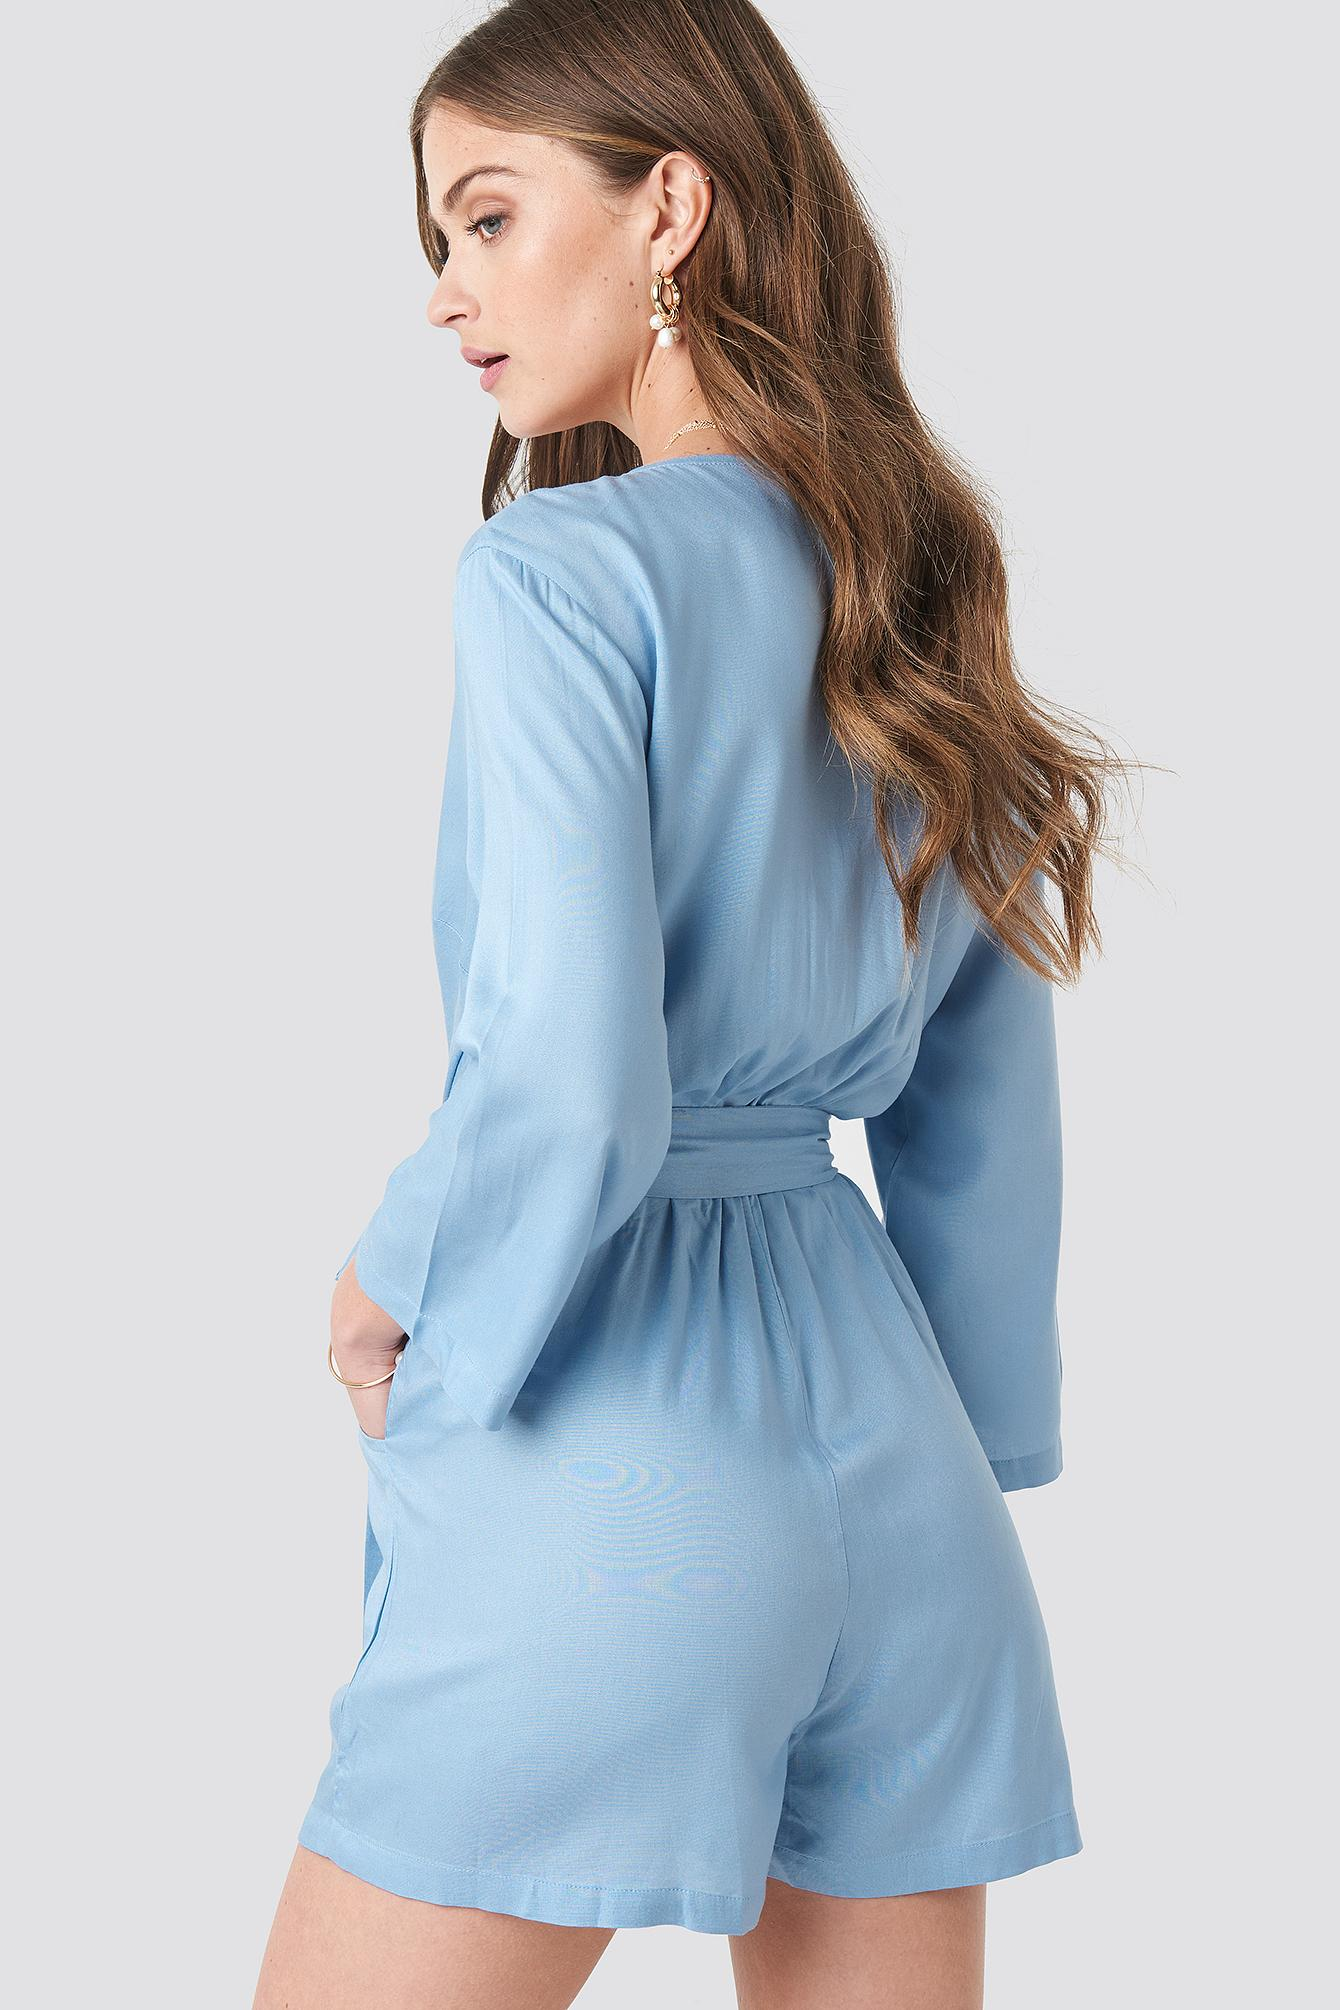 42f8c5632d1 NA-KD Wrap Playsuit Light Blue in Blue - Lyst